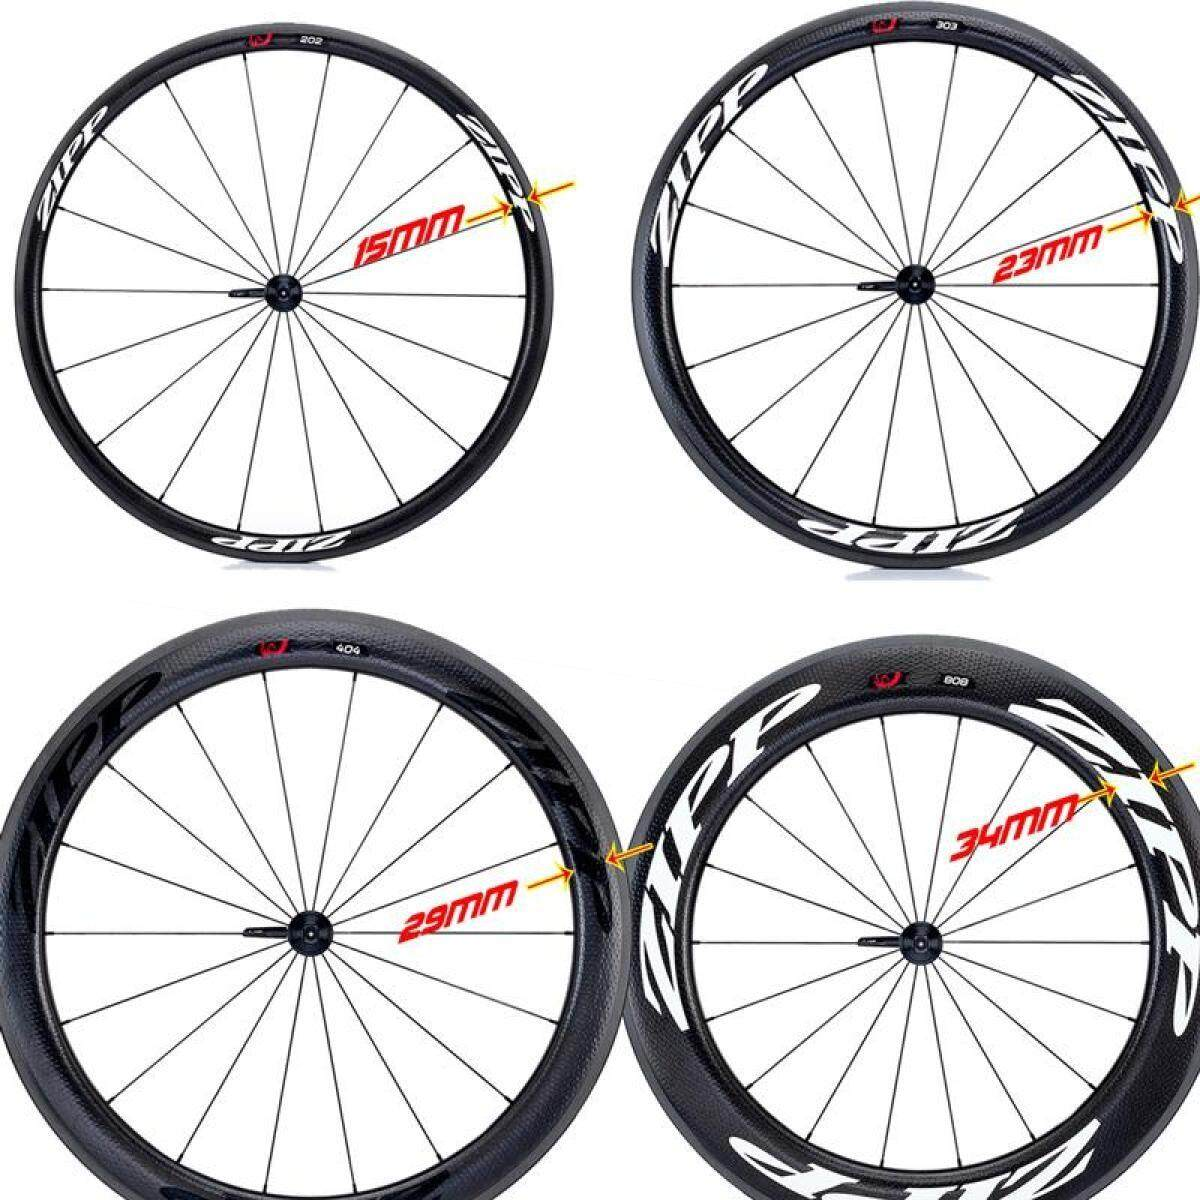 Product details of bicycle stickers zipp 202 303 404 808 carbon wheelset rim stickers for road bike two wheels replacement vinyl decals